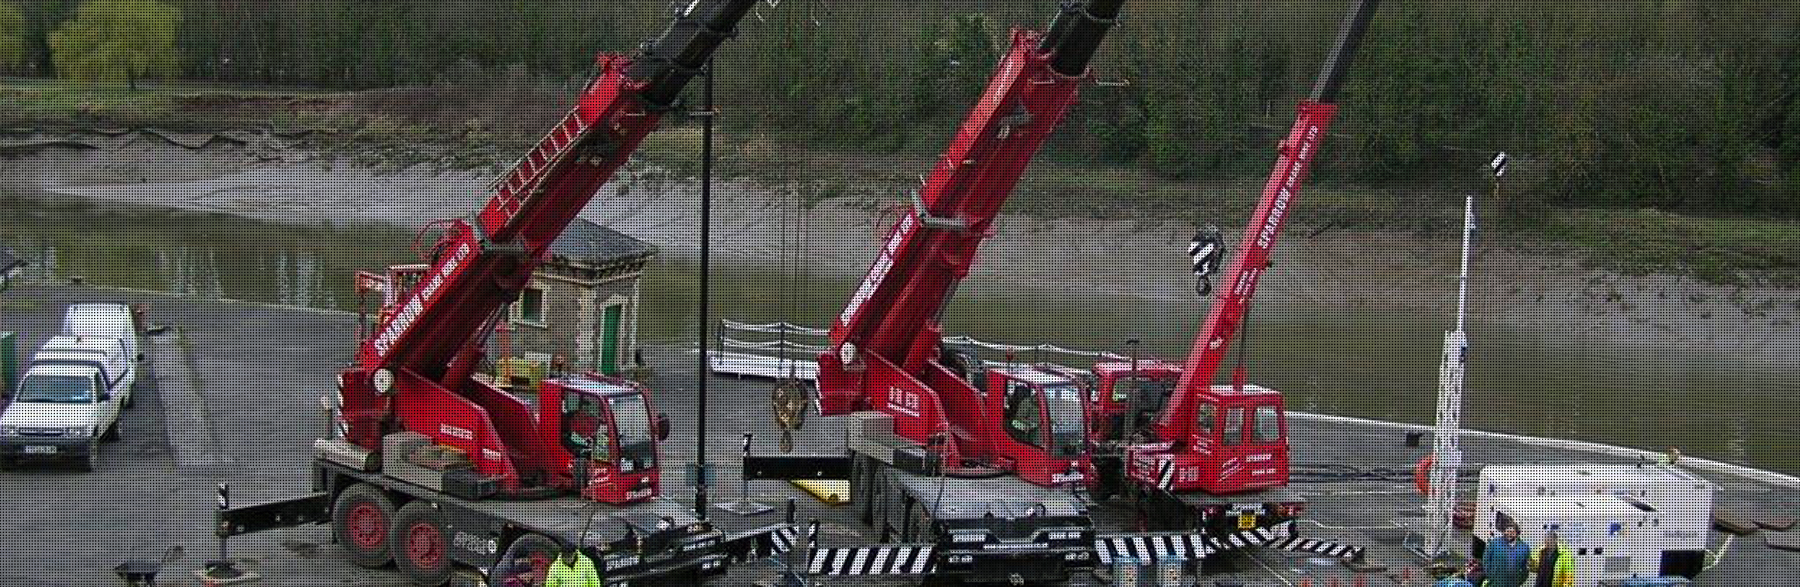 sparrow crane hire crane harbour lift